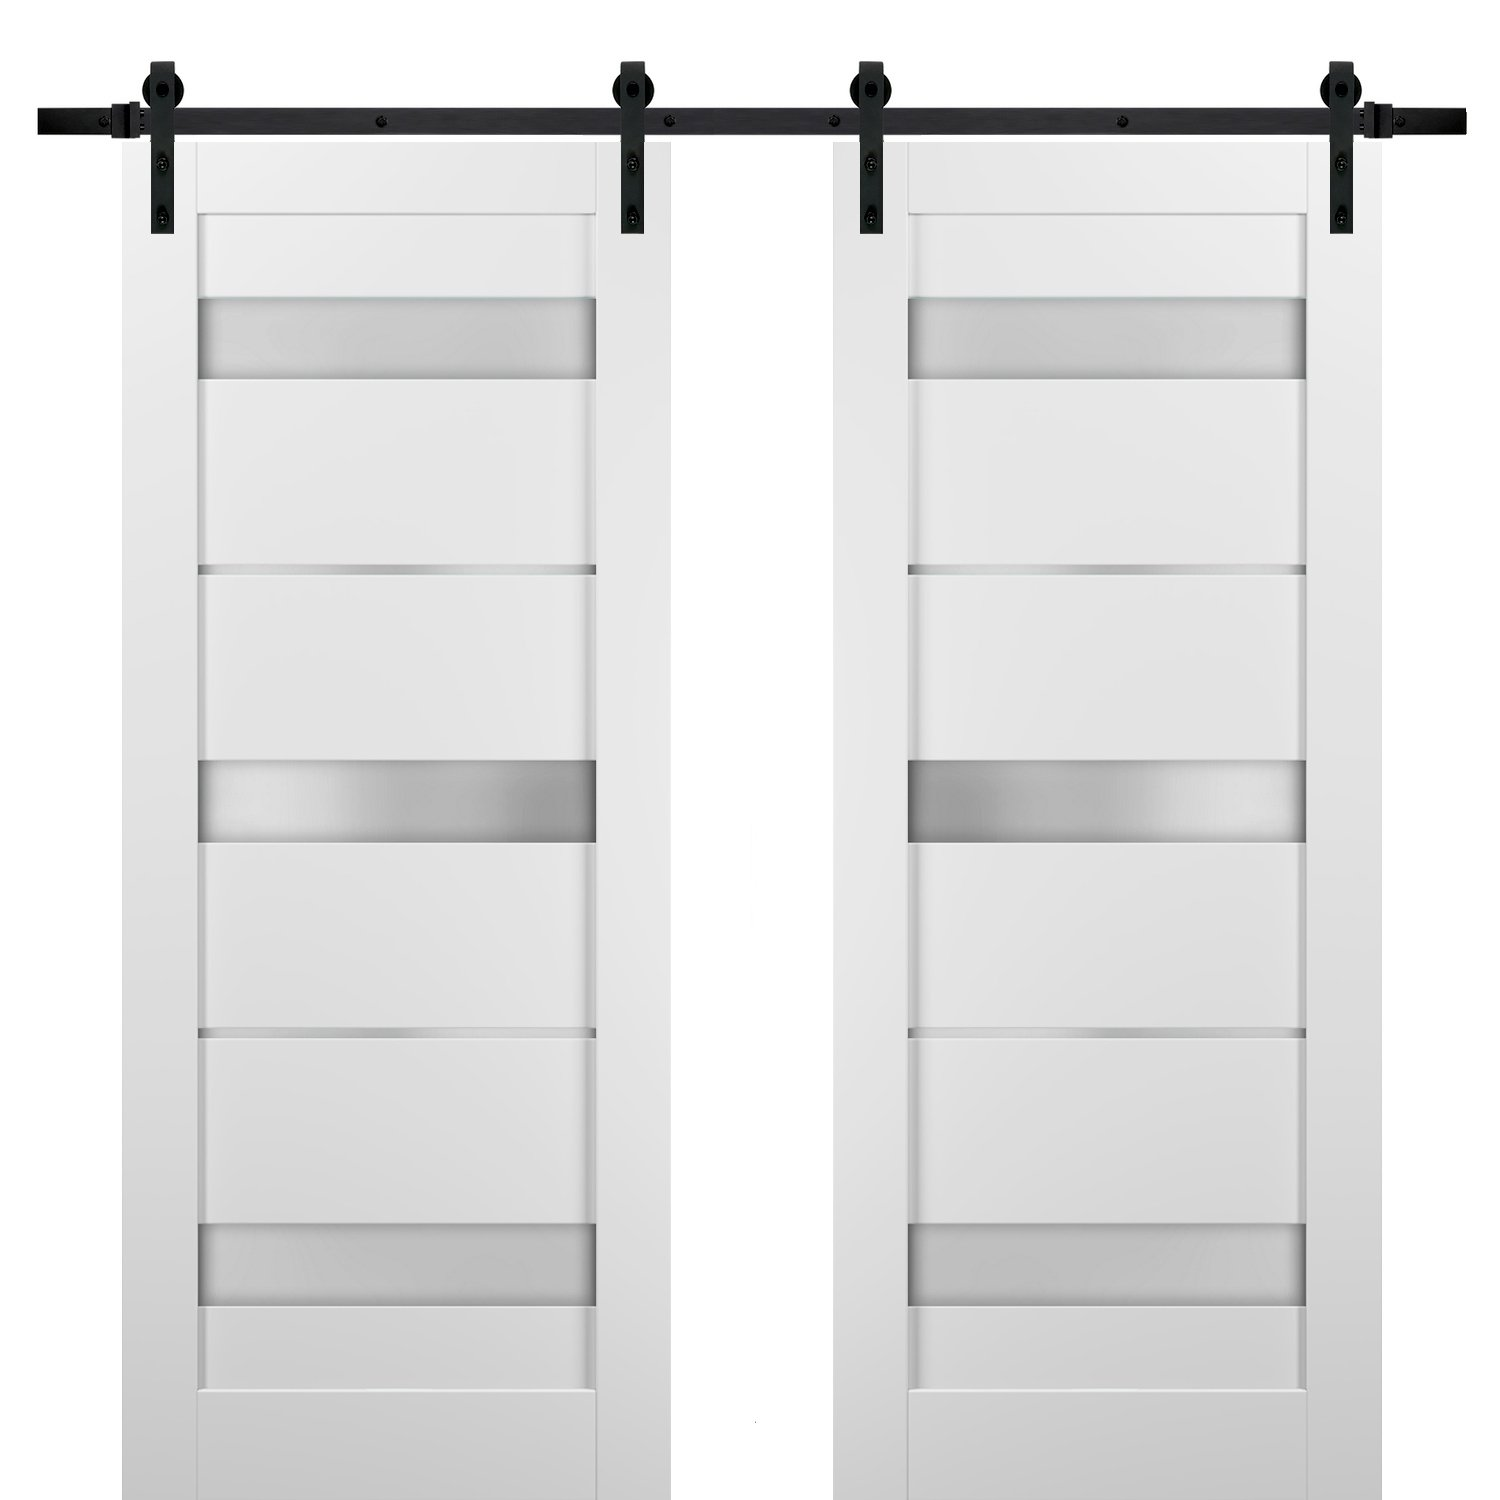 Sliding Double Barn Doors 56 X 80 With Hardware Quadro 4055 White Silk With Frosted Opaque Glass Top Mount 13ft Rail Sturdy Set Kitchen Lite Wooden Solid Panel Interior